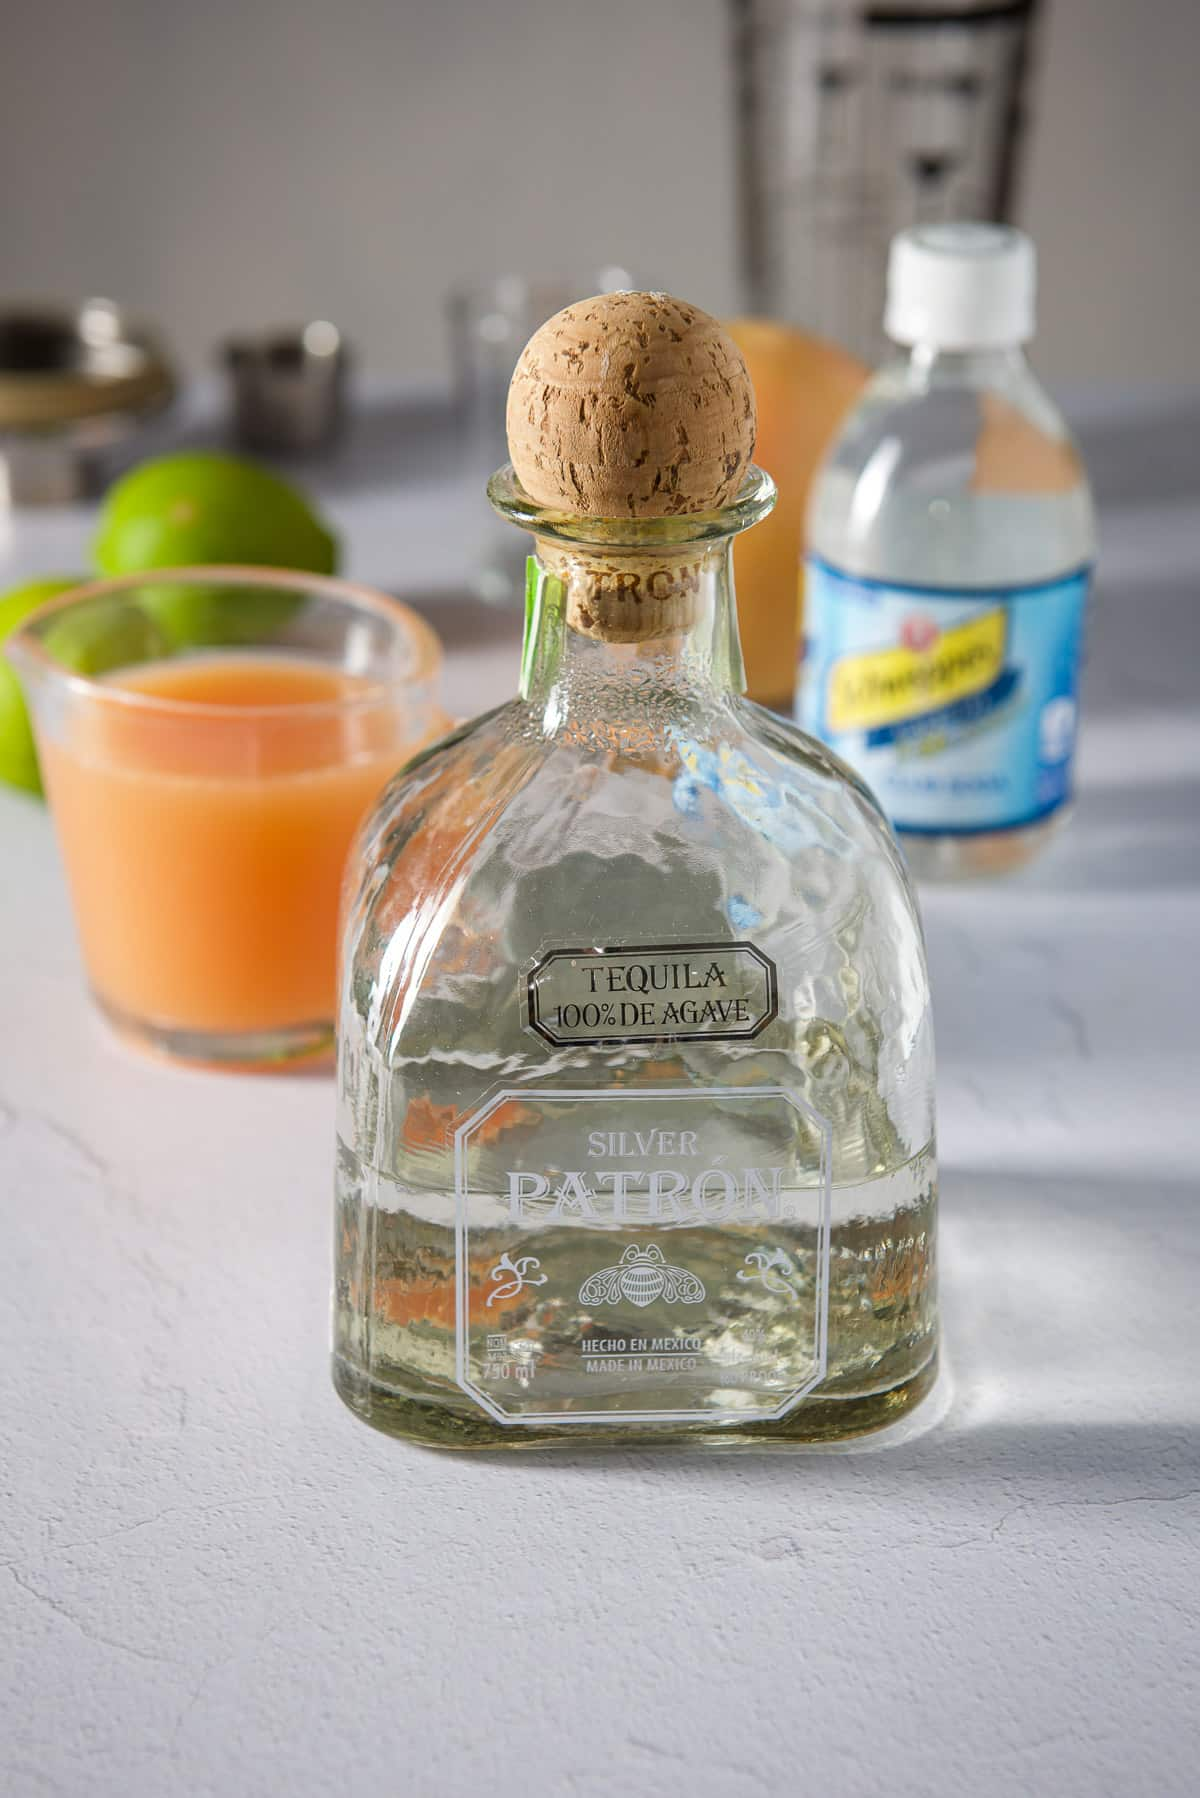 Tequila, grapefruit juice, limes, club soda, a grapefruit and shaker in background